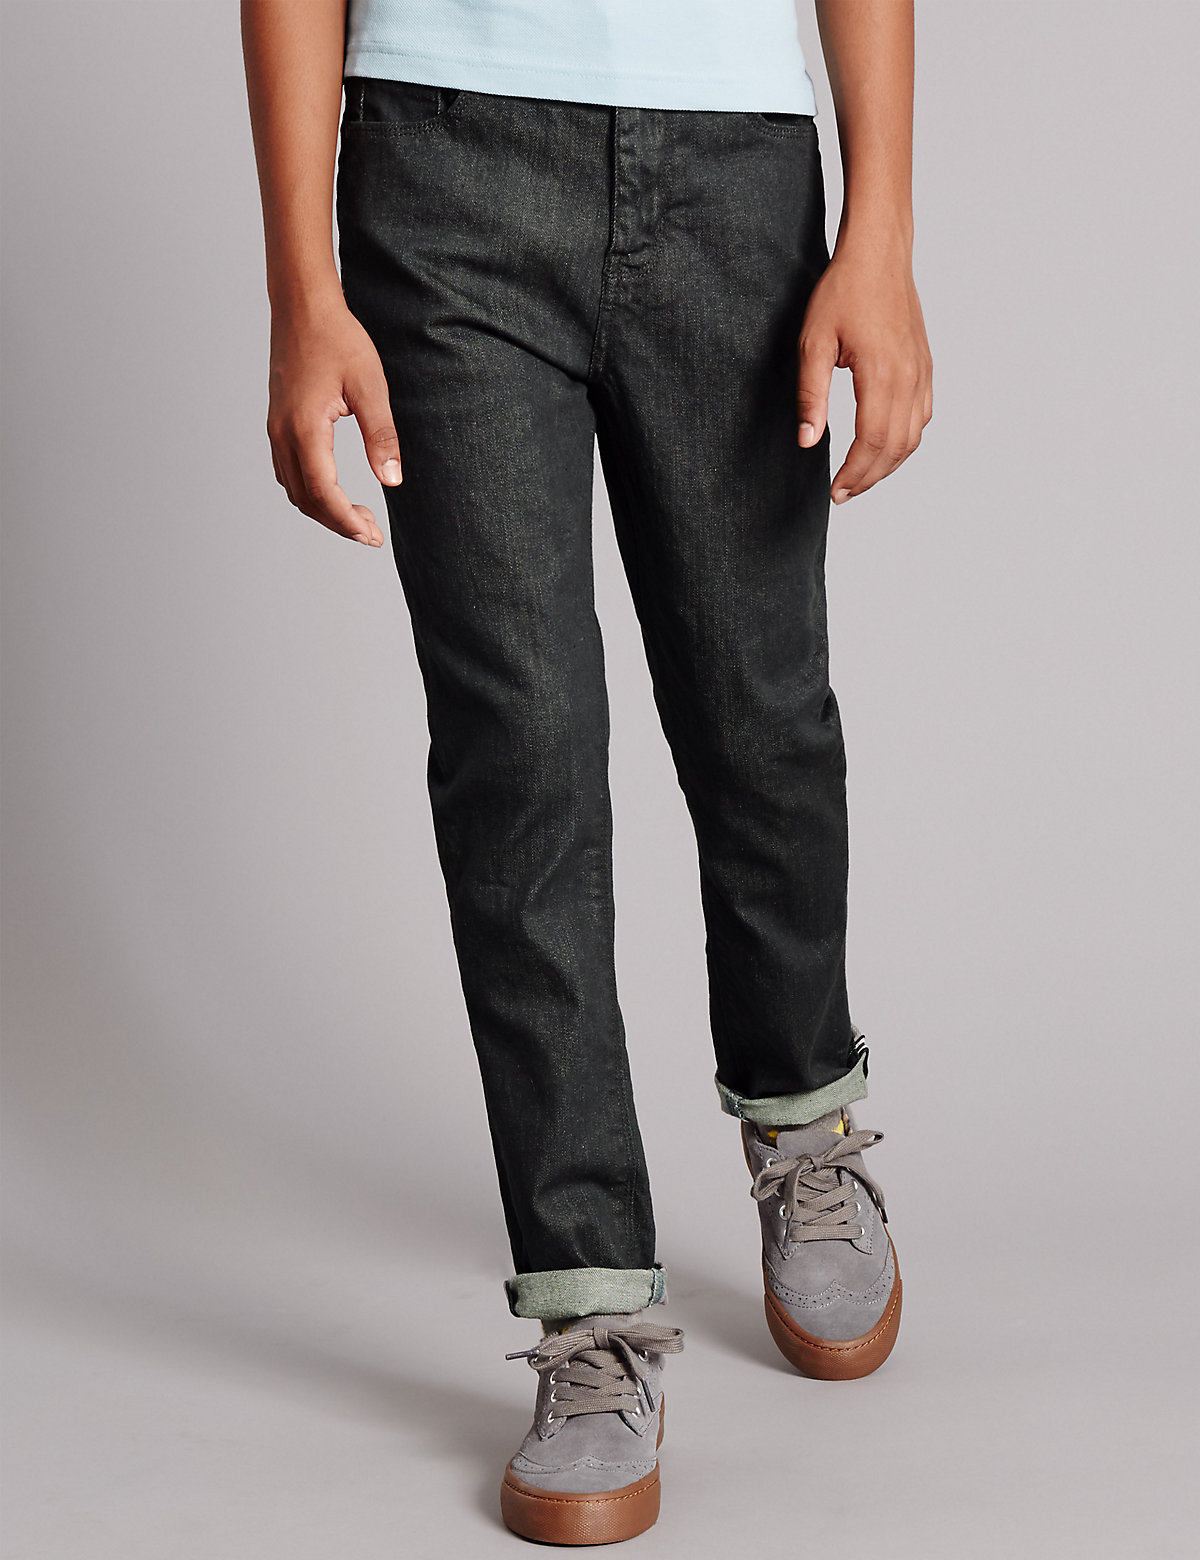 Autograph Cotton Rich Slim Denim Jeans (5-14 Years)